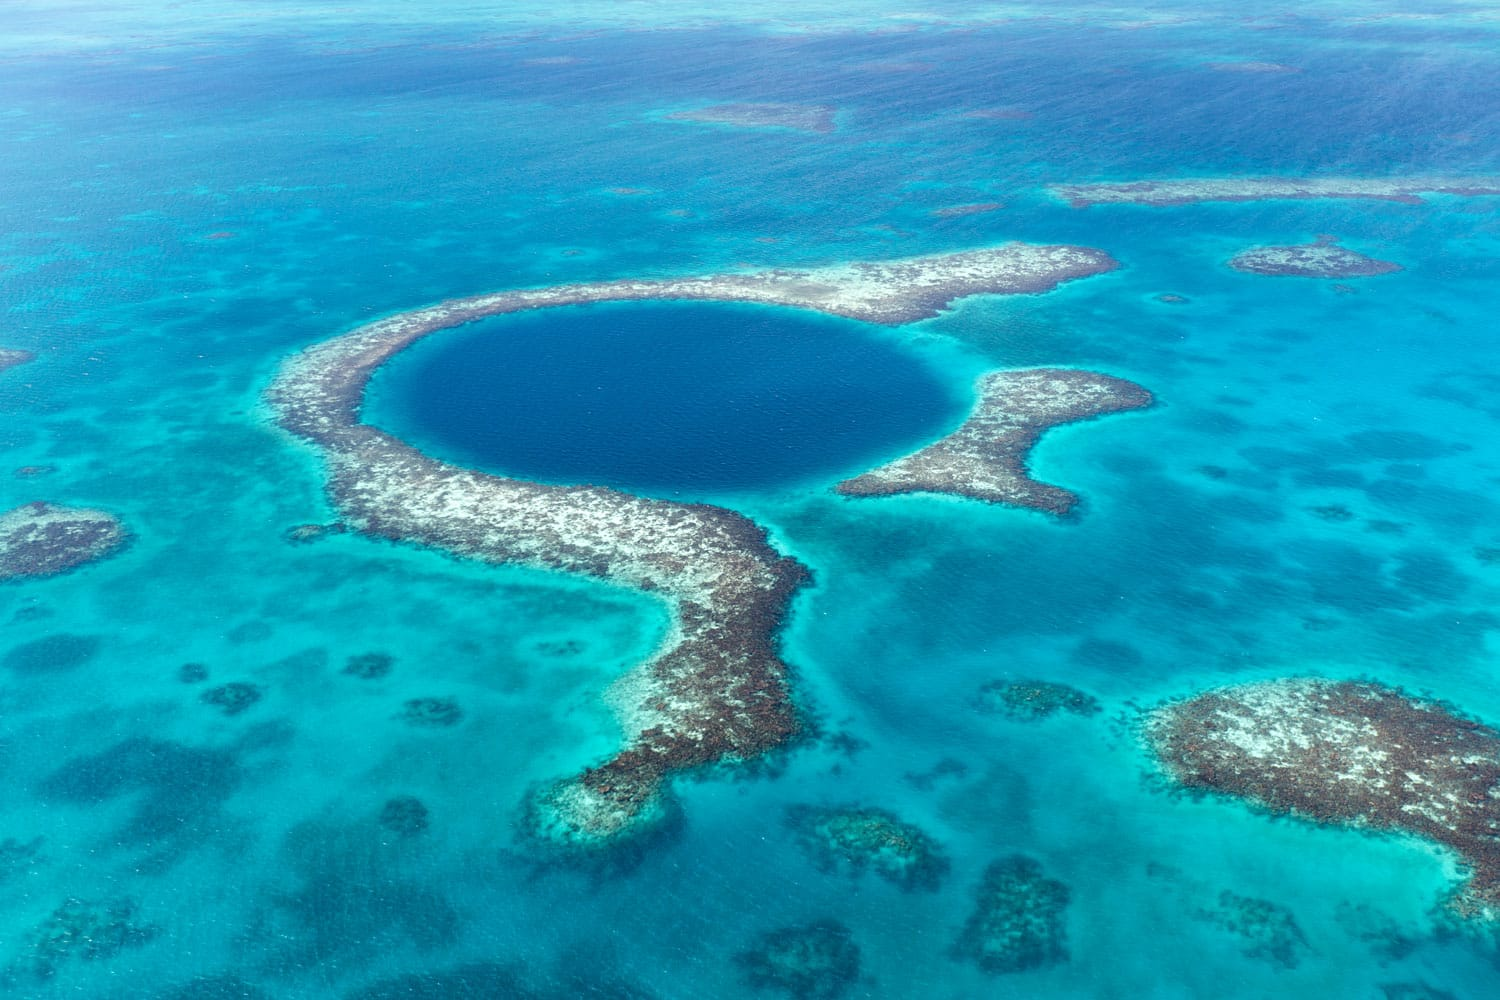 An aerial view of the famous diving spot, Blue Hole off the coast of Belize